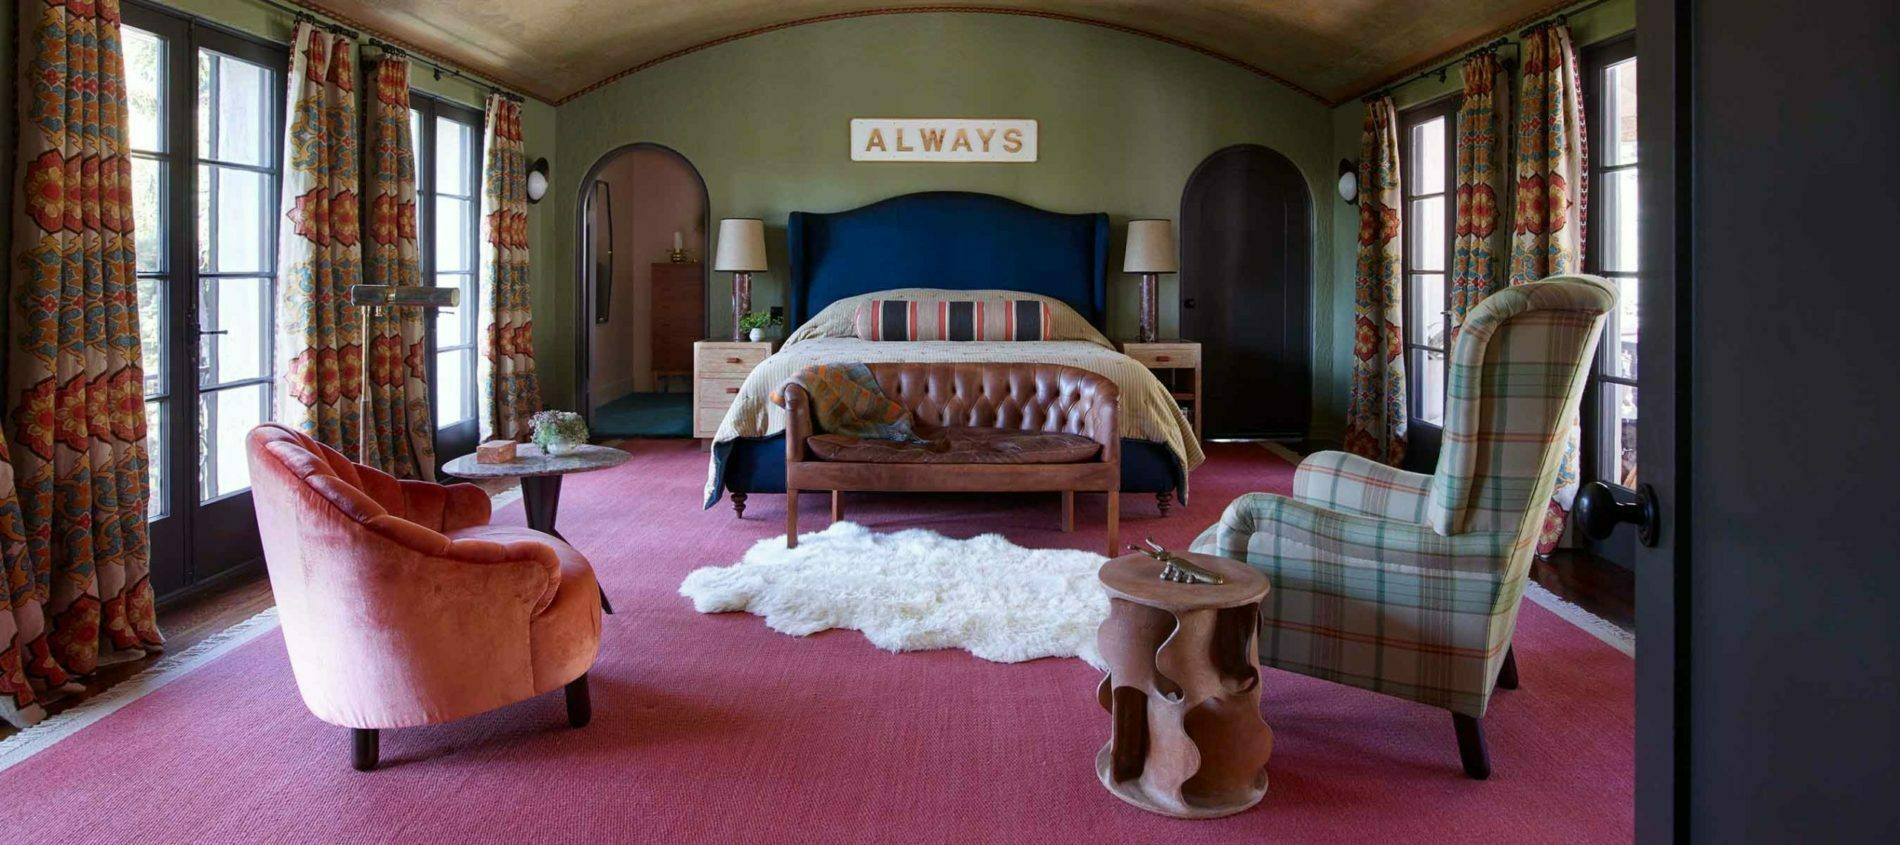 Large bedroom with pink carpets and green walls, with small sheepskin rug